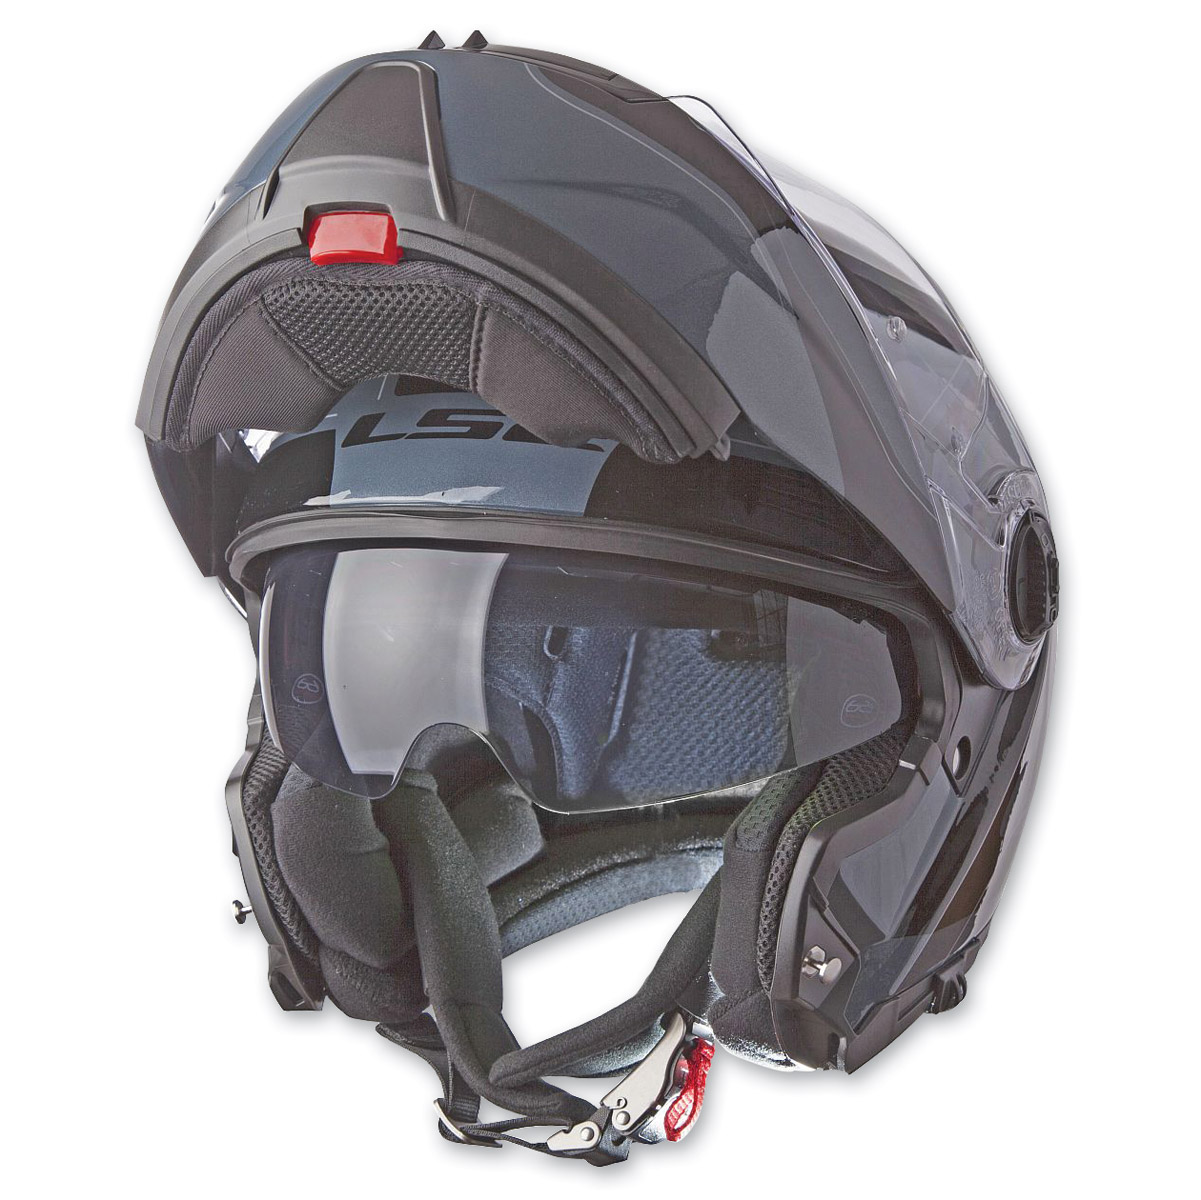 Victory Motorcycle Parts >> LS2 Strobe Modular Helmets